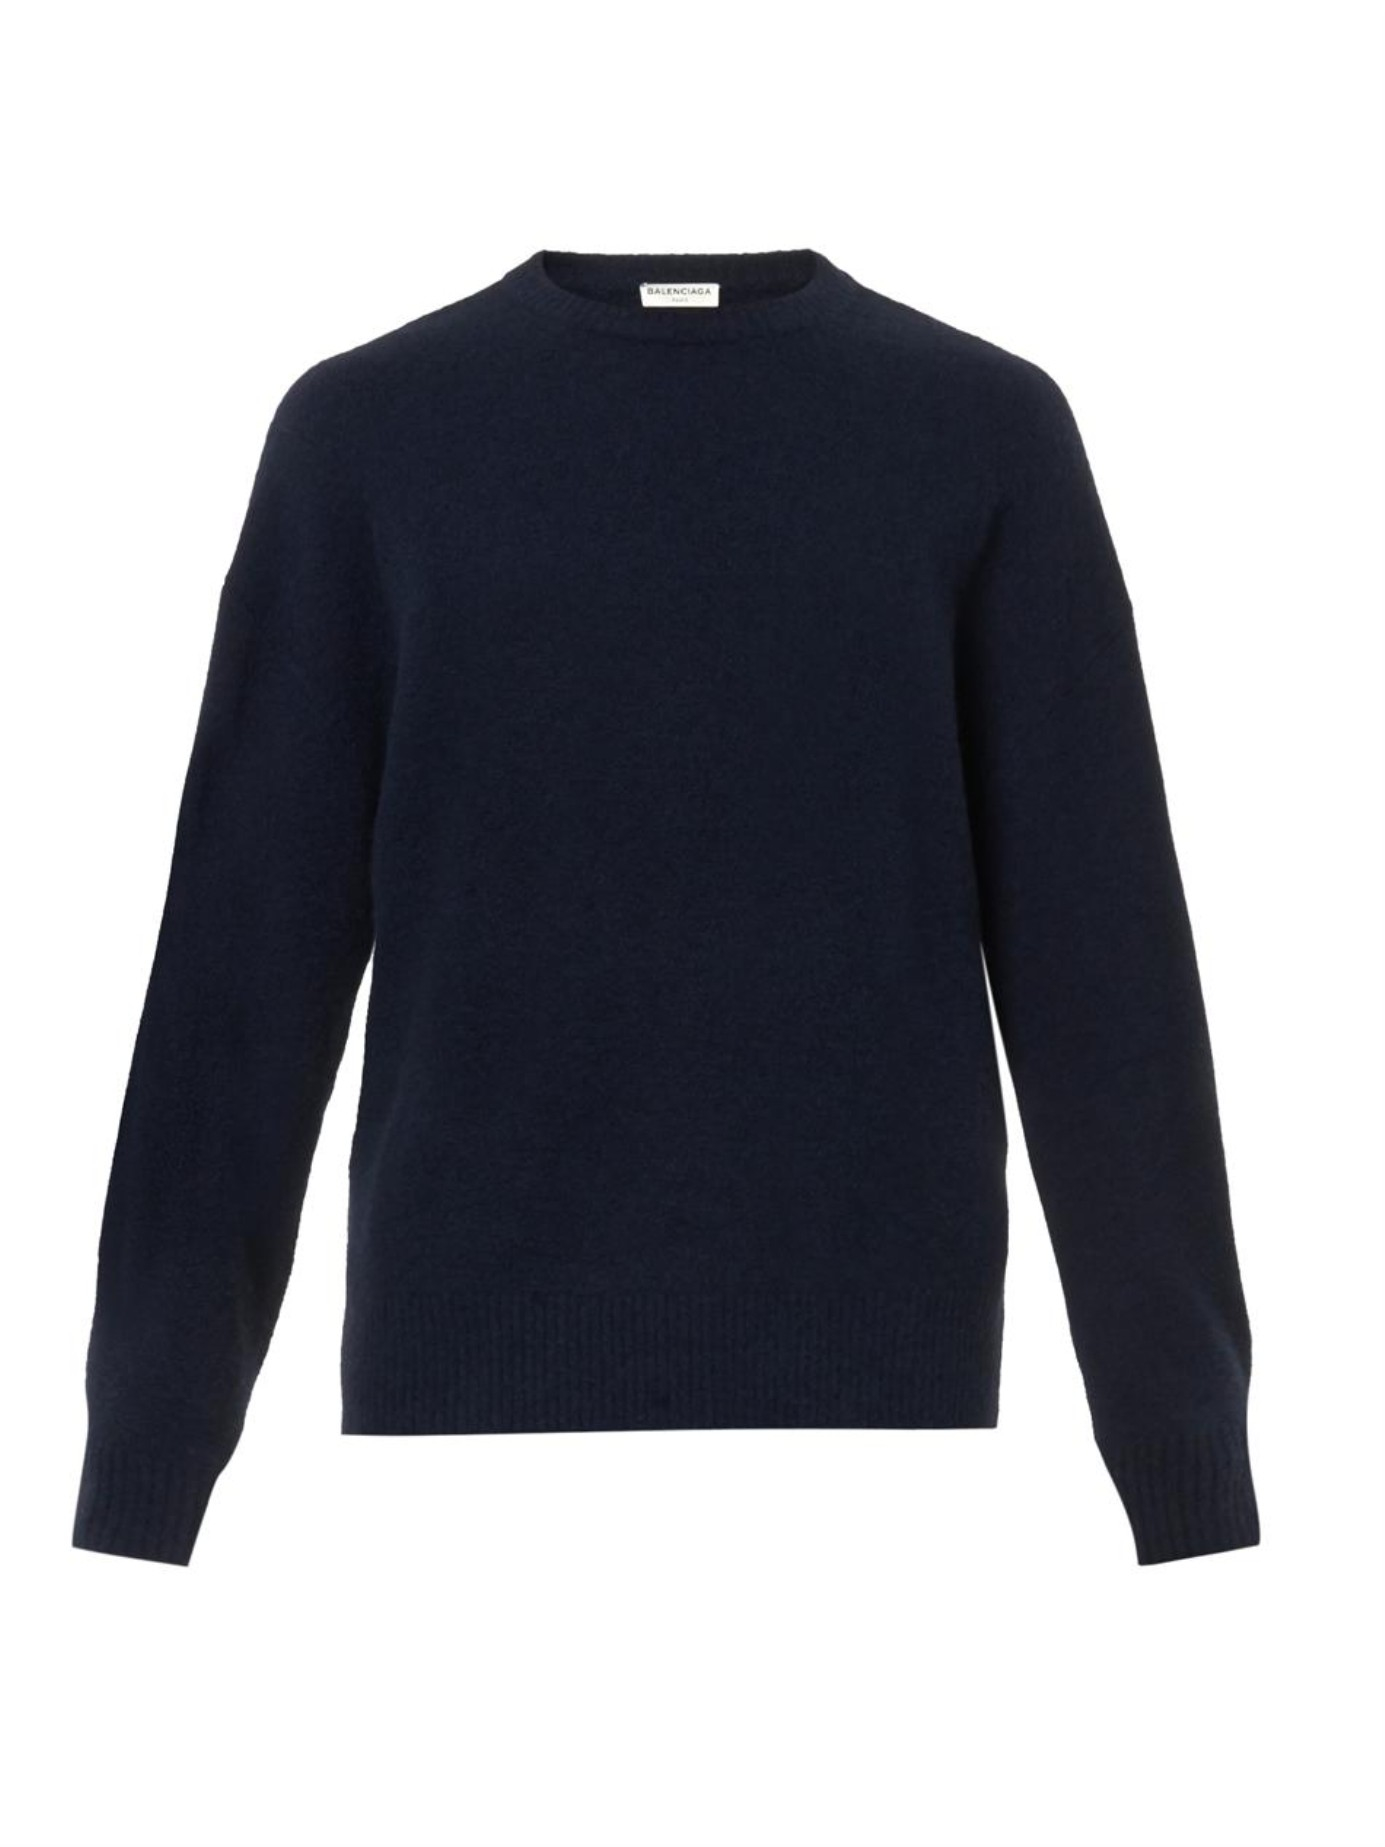 Balenciaga Oversized Navy Wool-Blend Sweater in Black for Men | Lyst